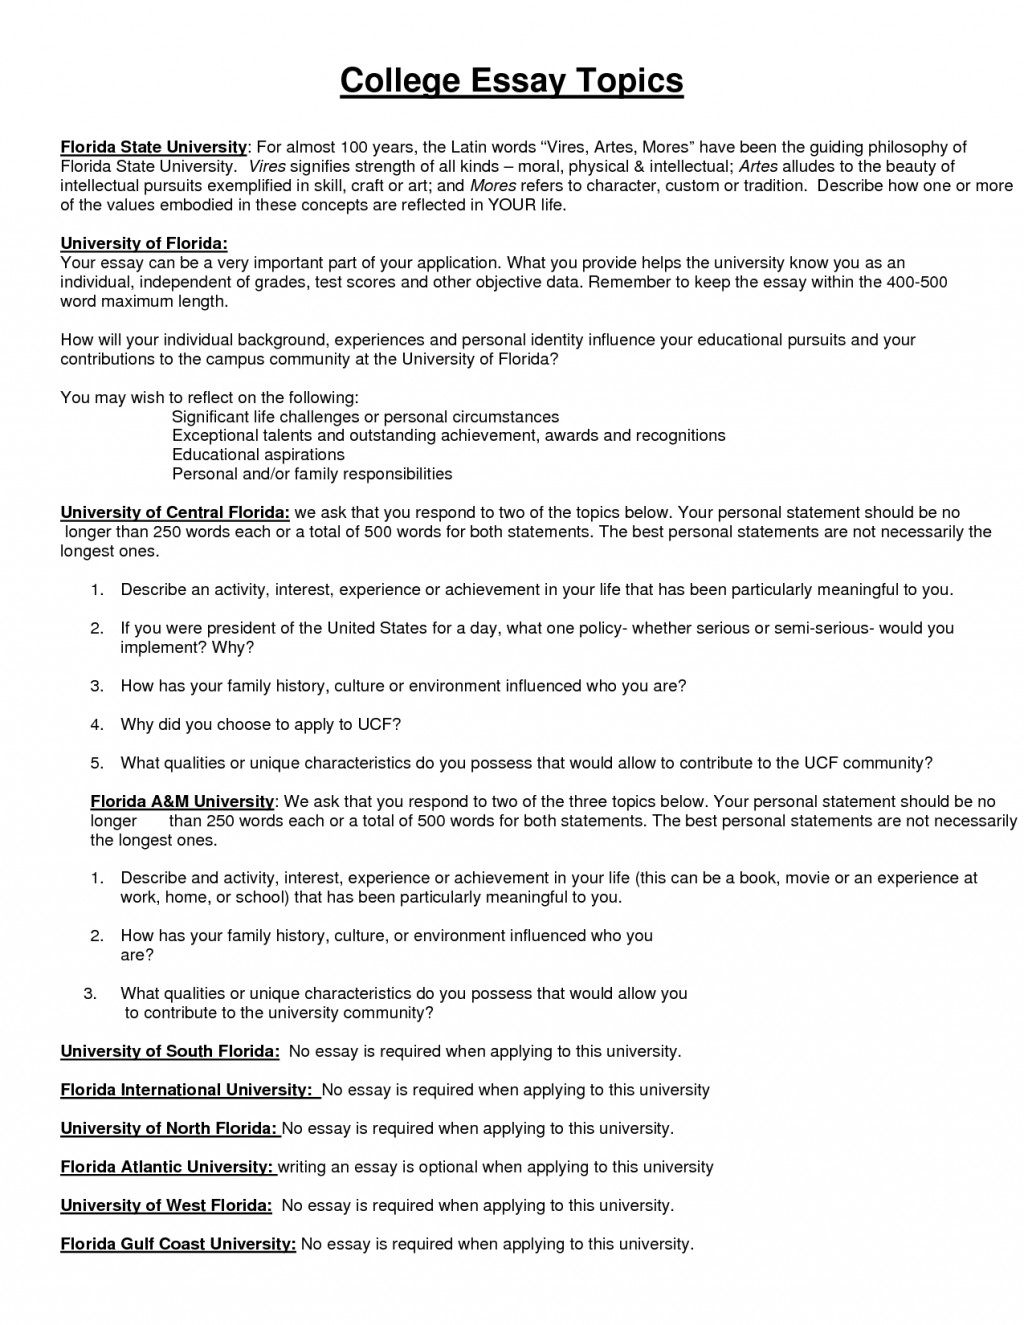 012 College Prompt Essays 4khqbt5dlt Unique Essay Examples 1 Application Prompts Large